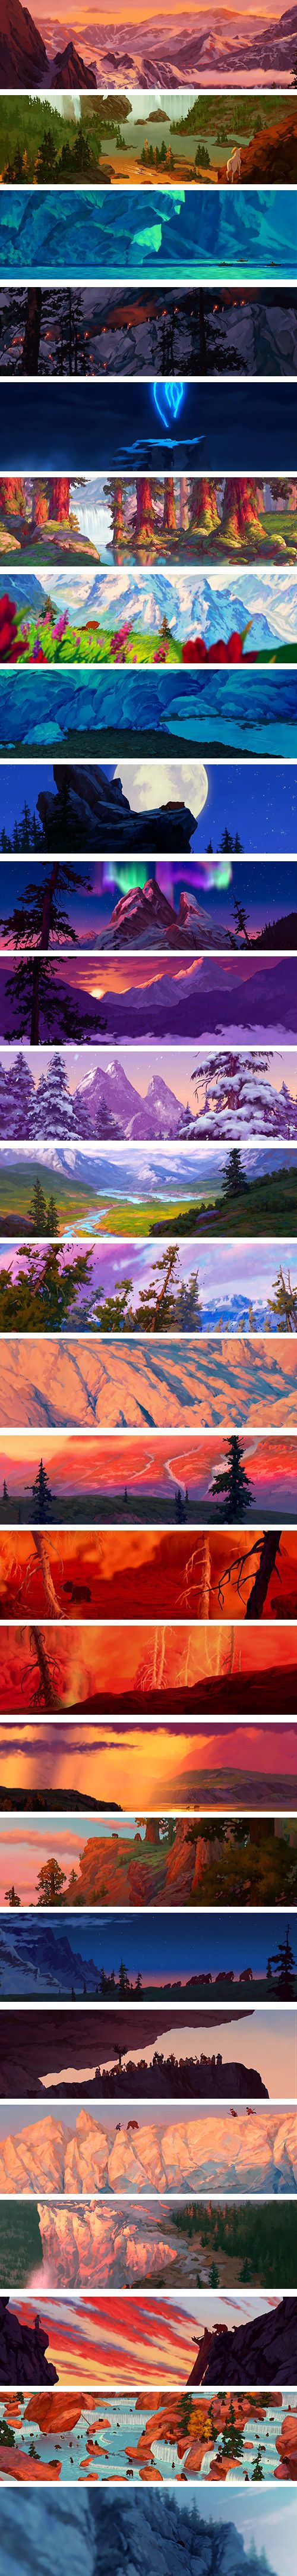 digital illustrated landscapes and backgrounds